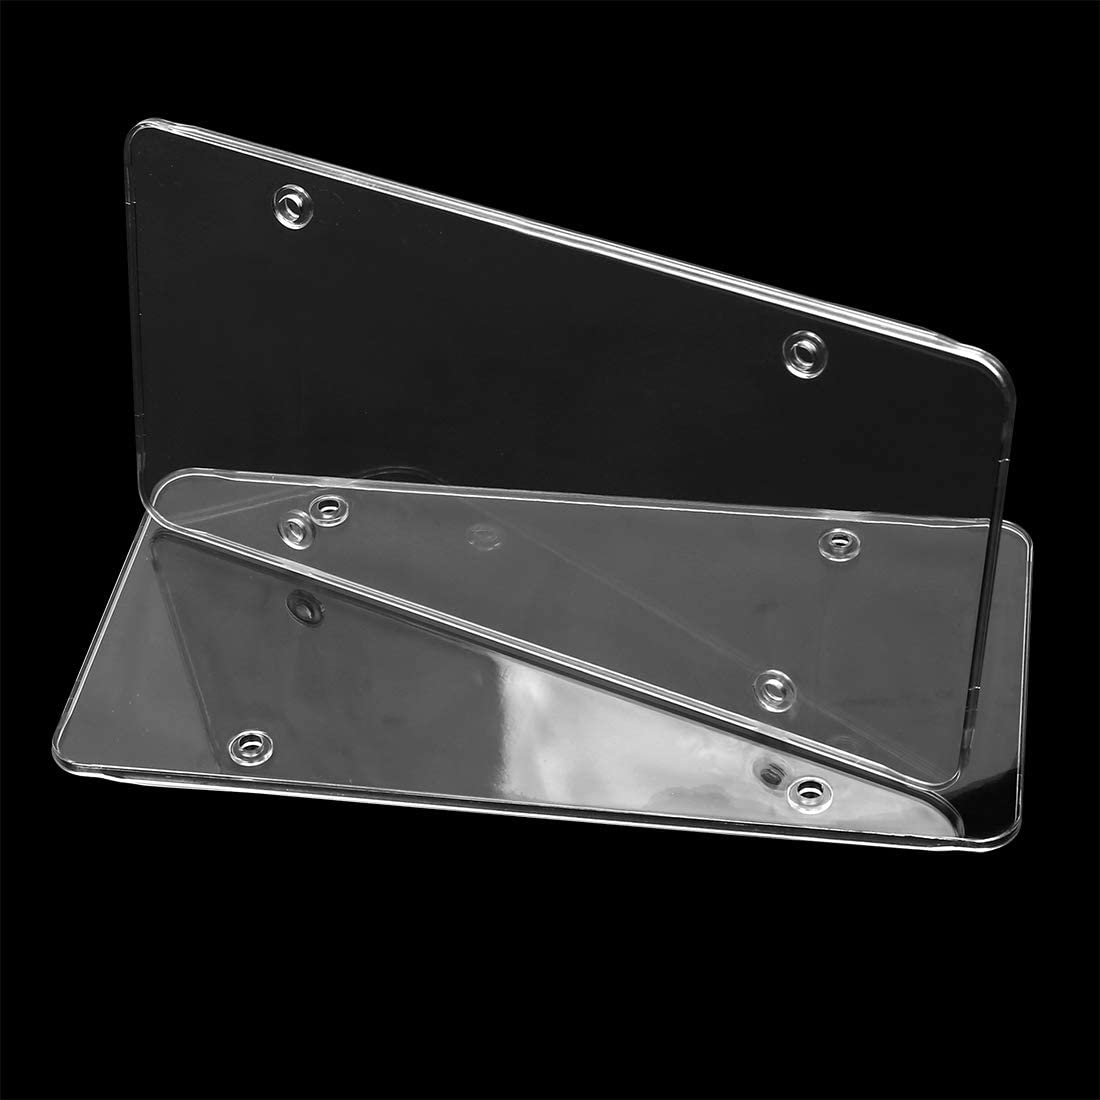 X AUTOHAUX 2pcs Clear Flat License Plate Cover Shield Frame Plastic Tag Car Truck Protector 30.5x15.2cm